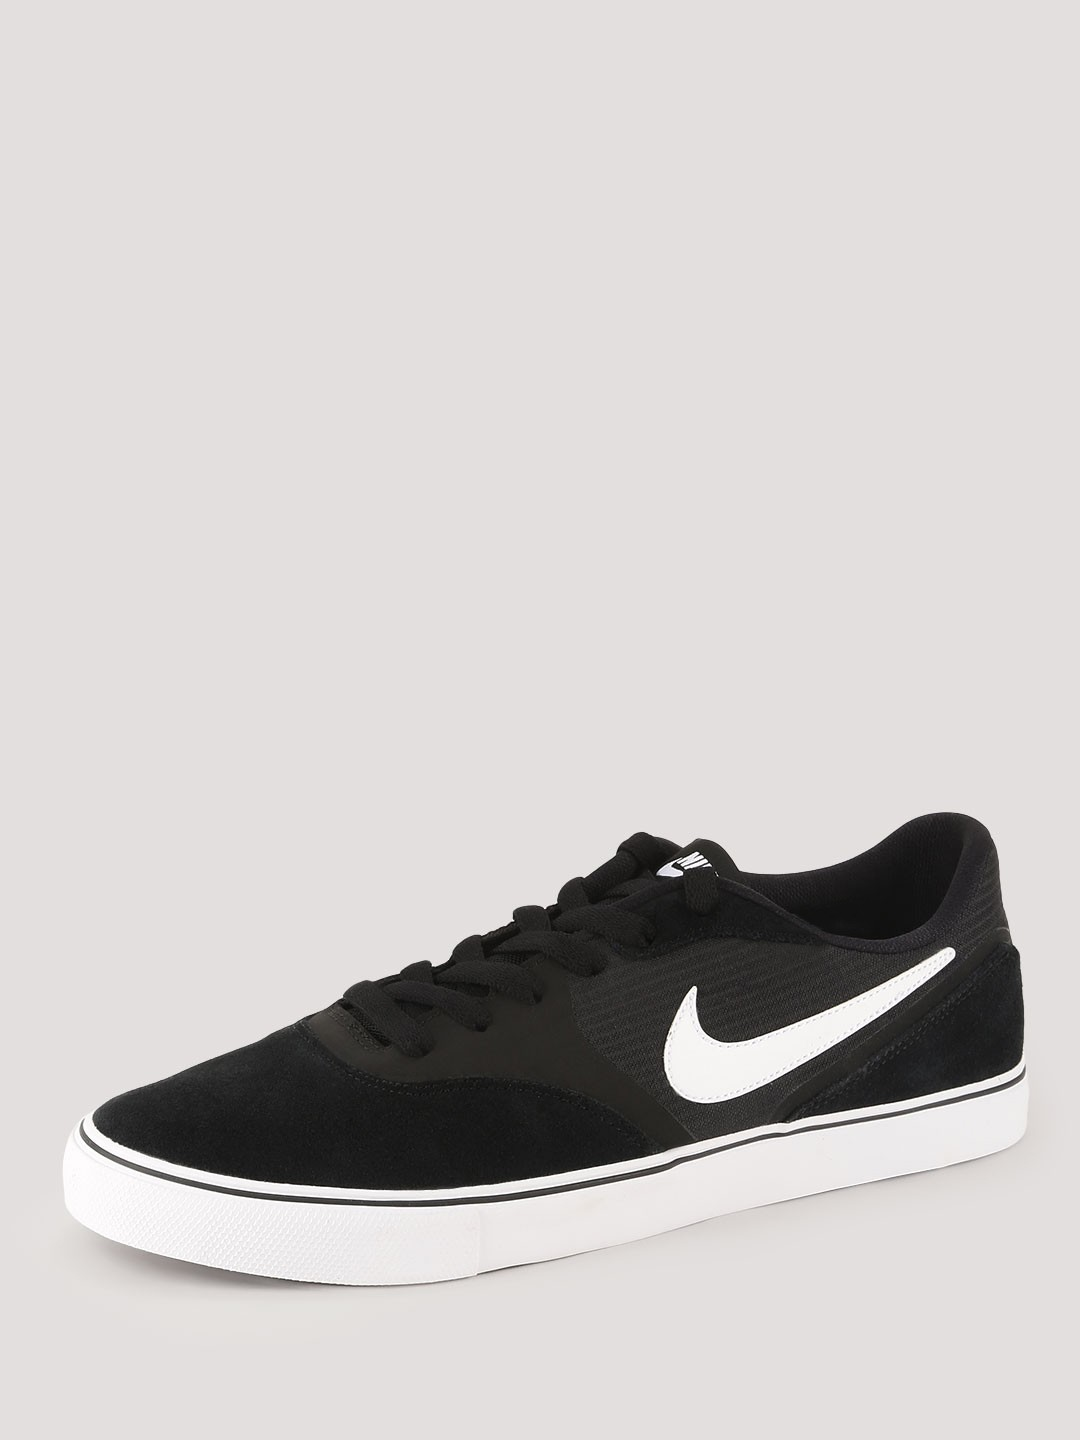 nikes casual shoes